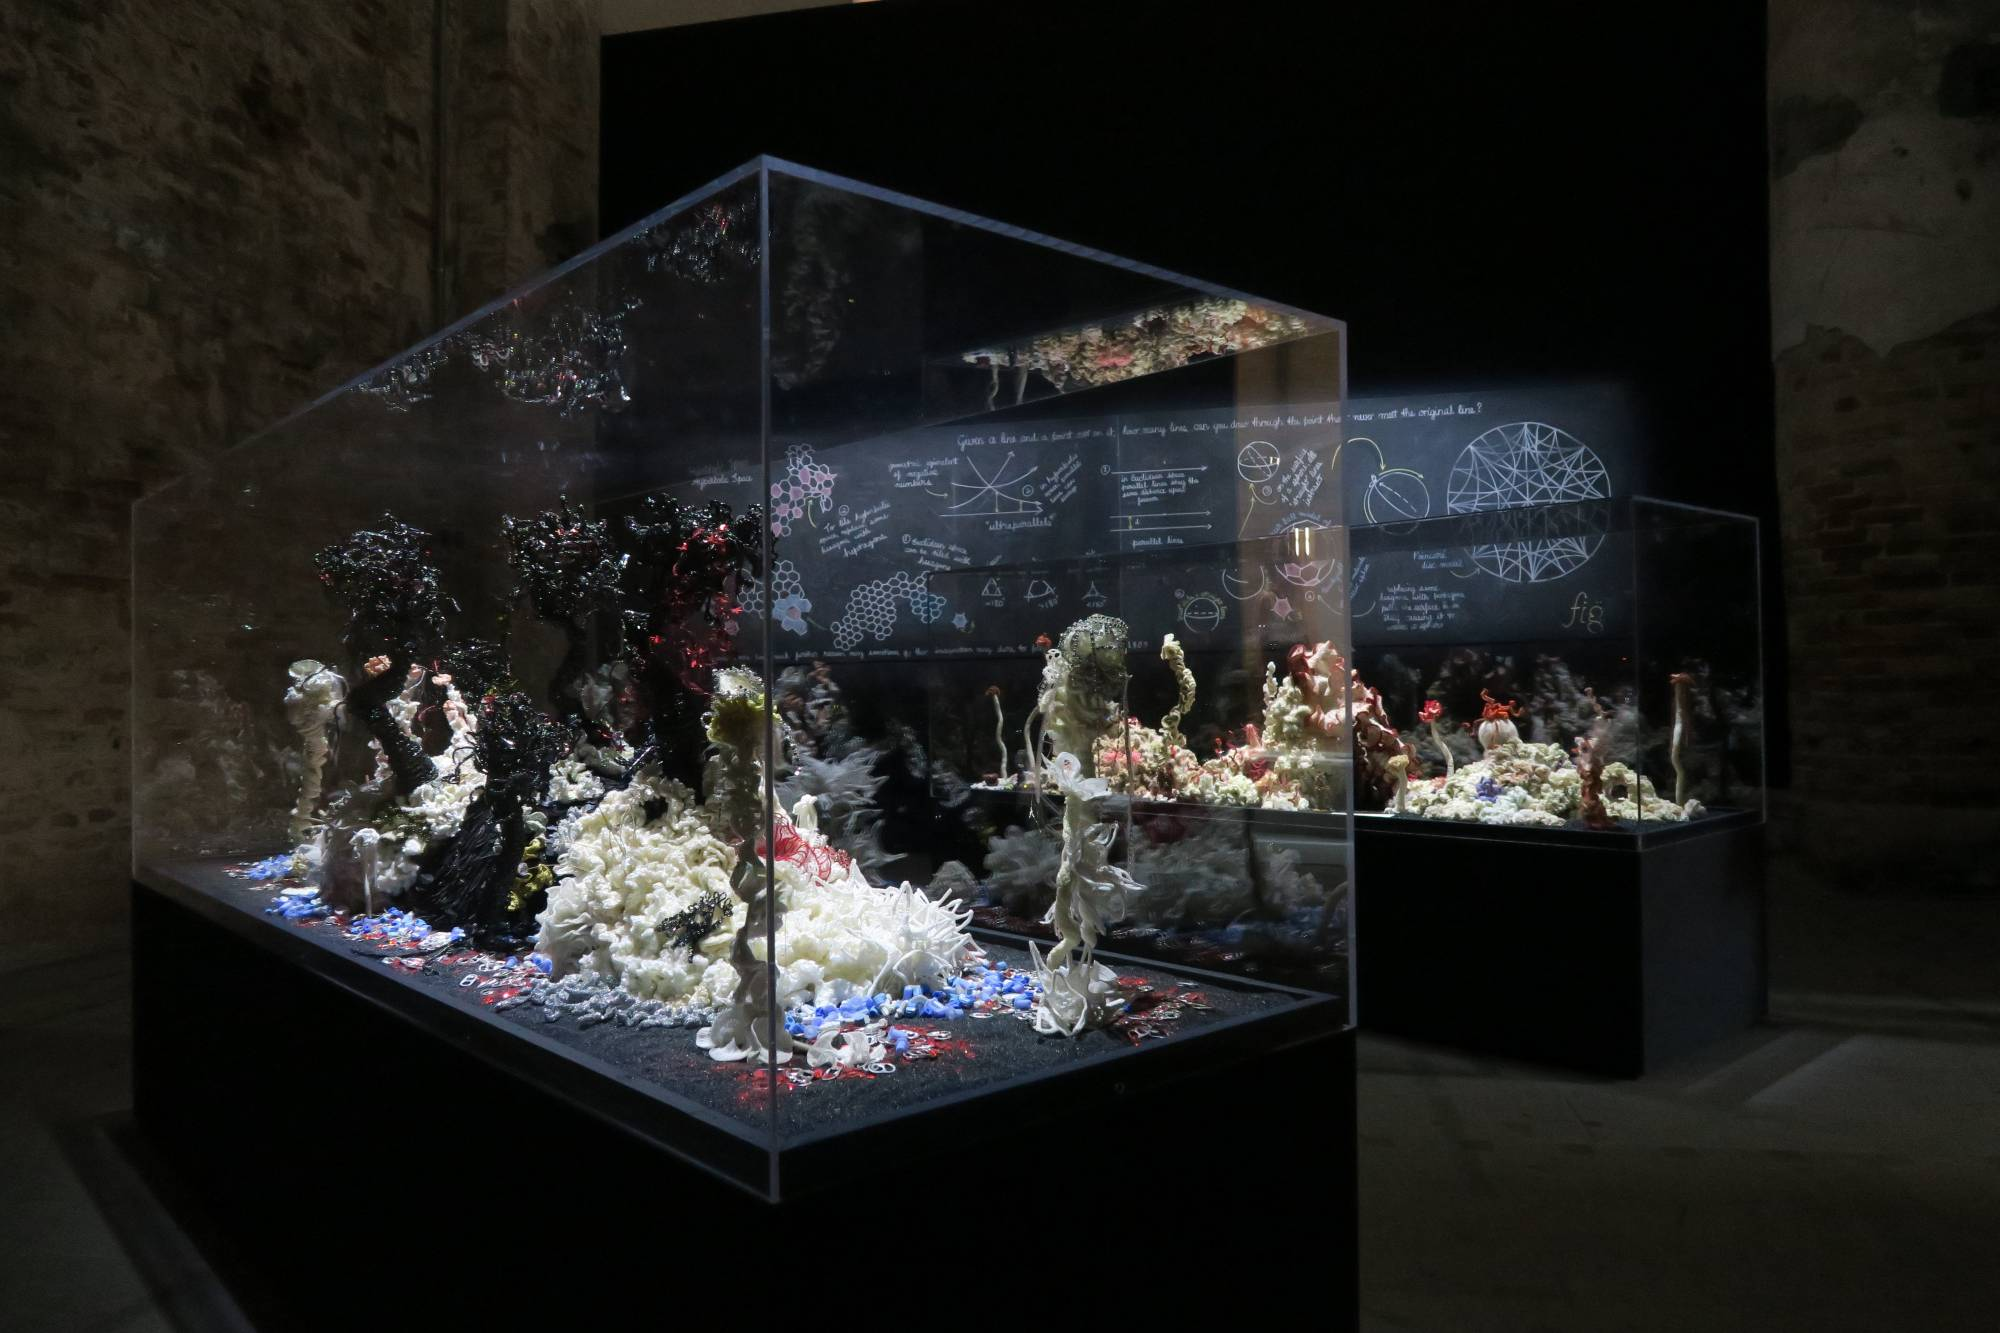 Reef sculptures in gallery dramatically lit against black background